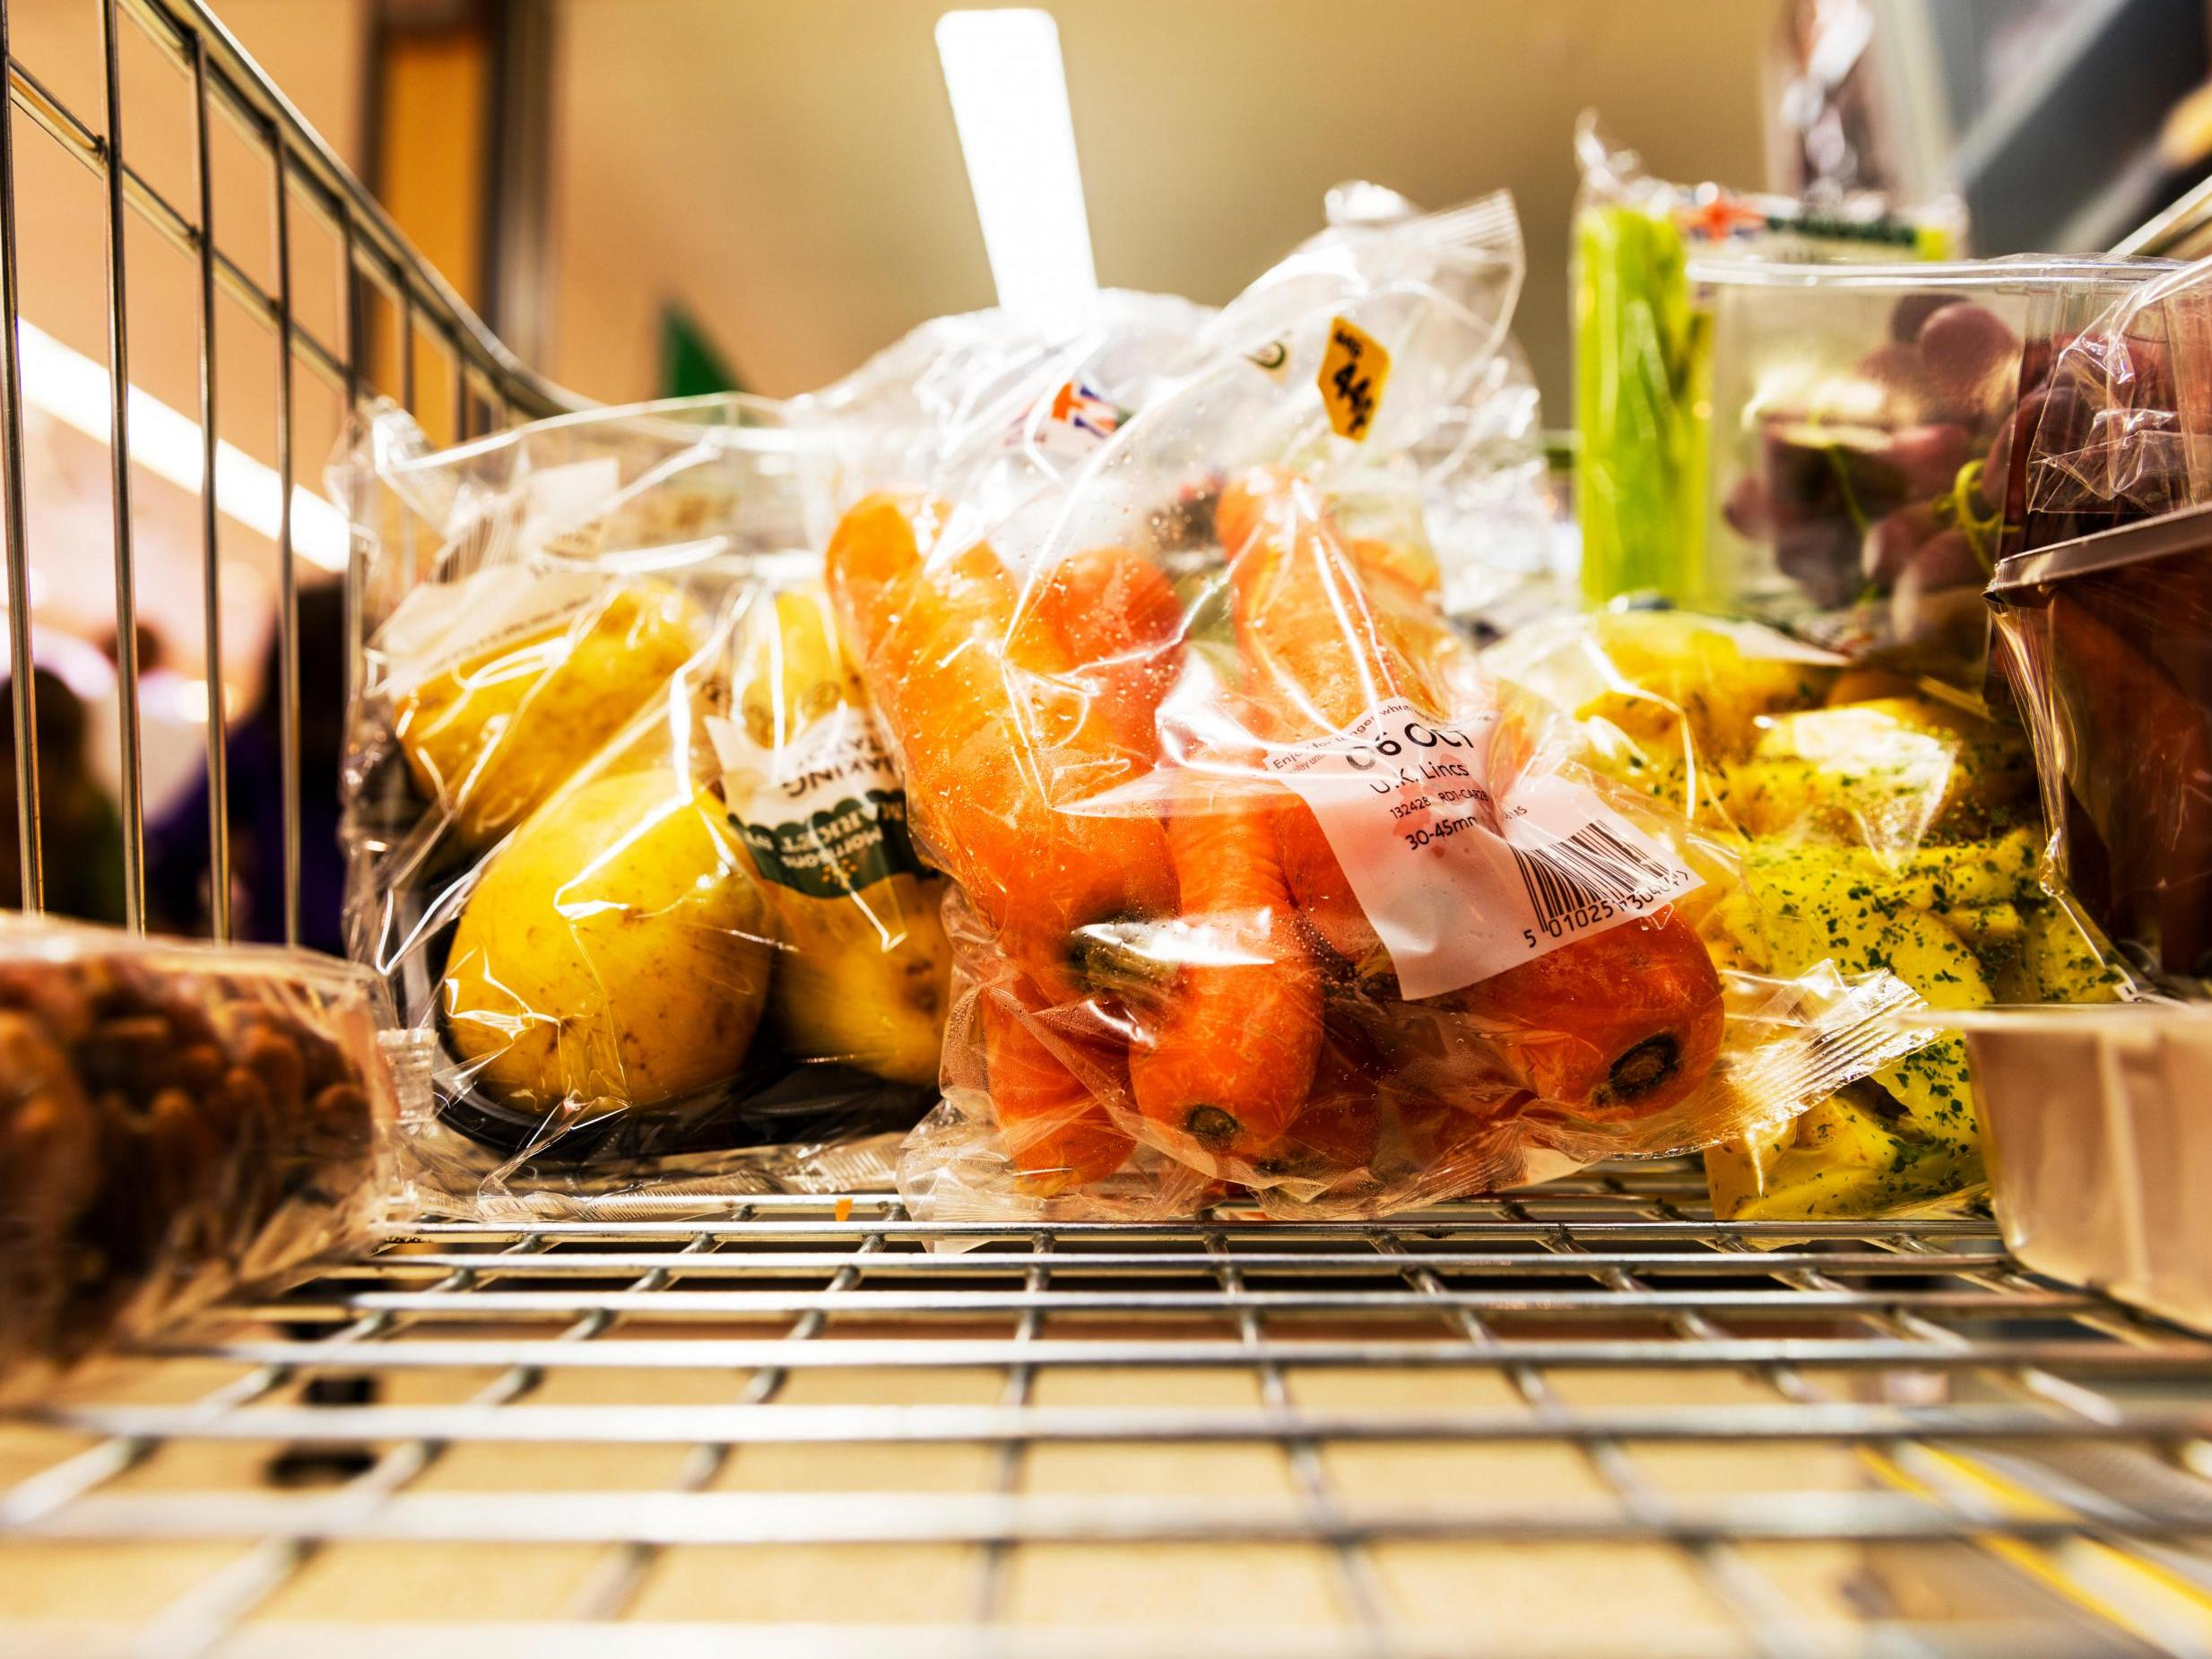 Call to use leftovers to cut waste and help environment